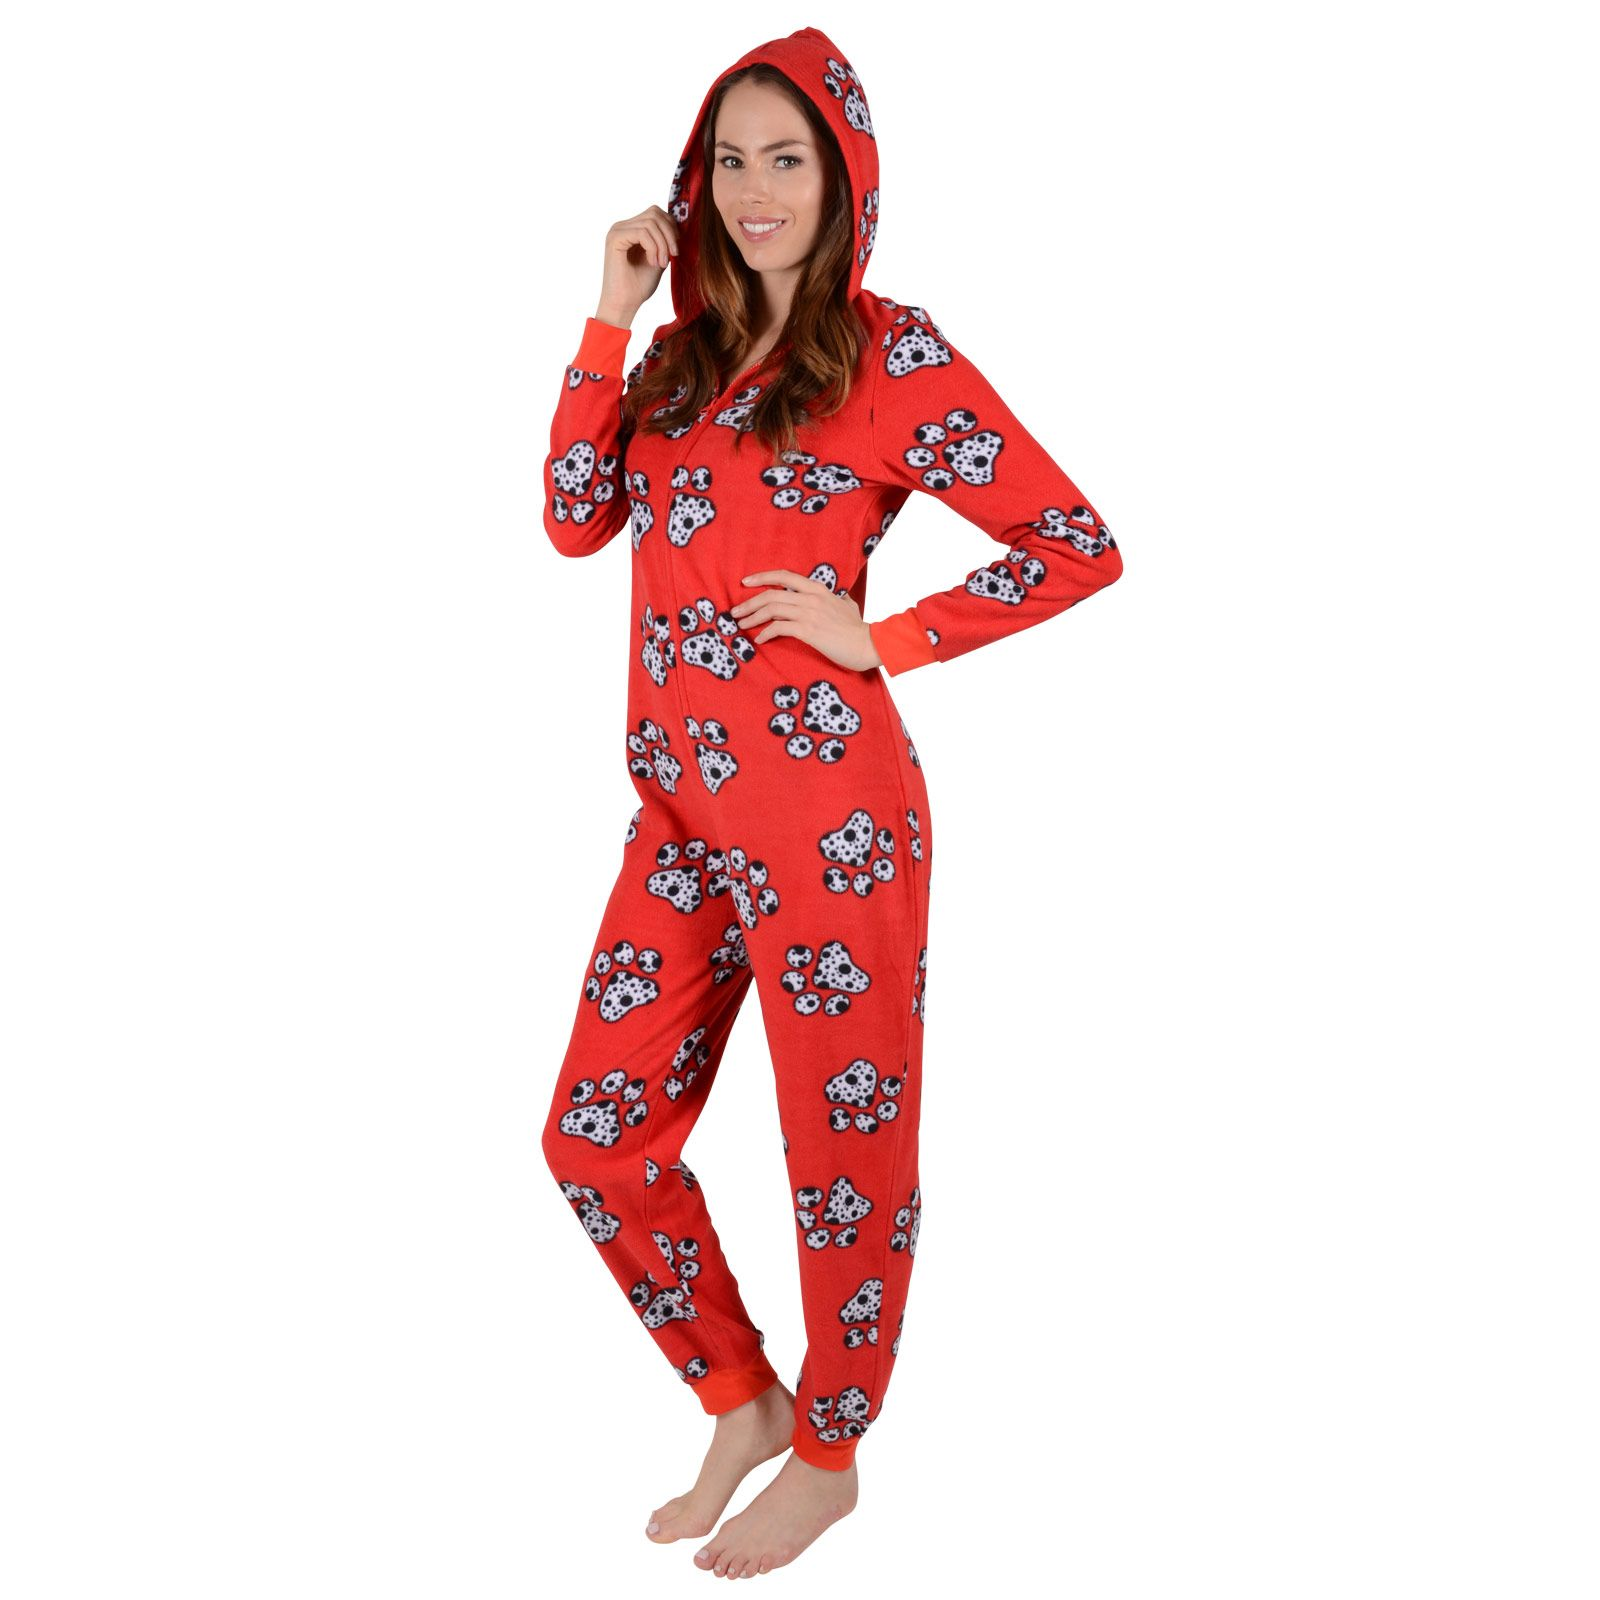 17 Best images about one piece pajamas on Pinterest | Festivals ...